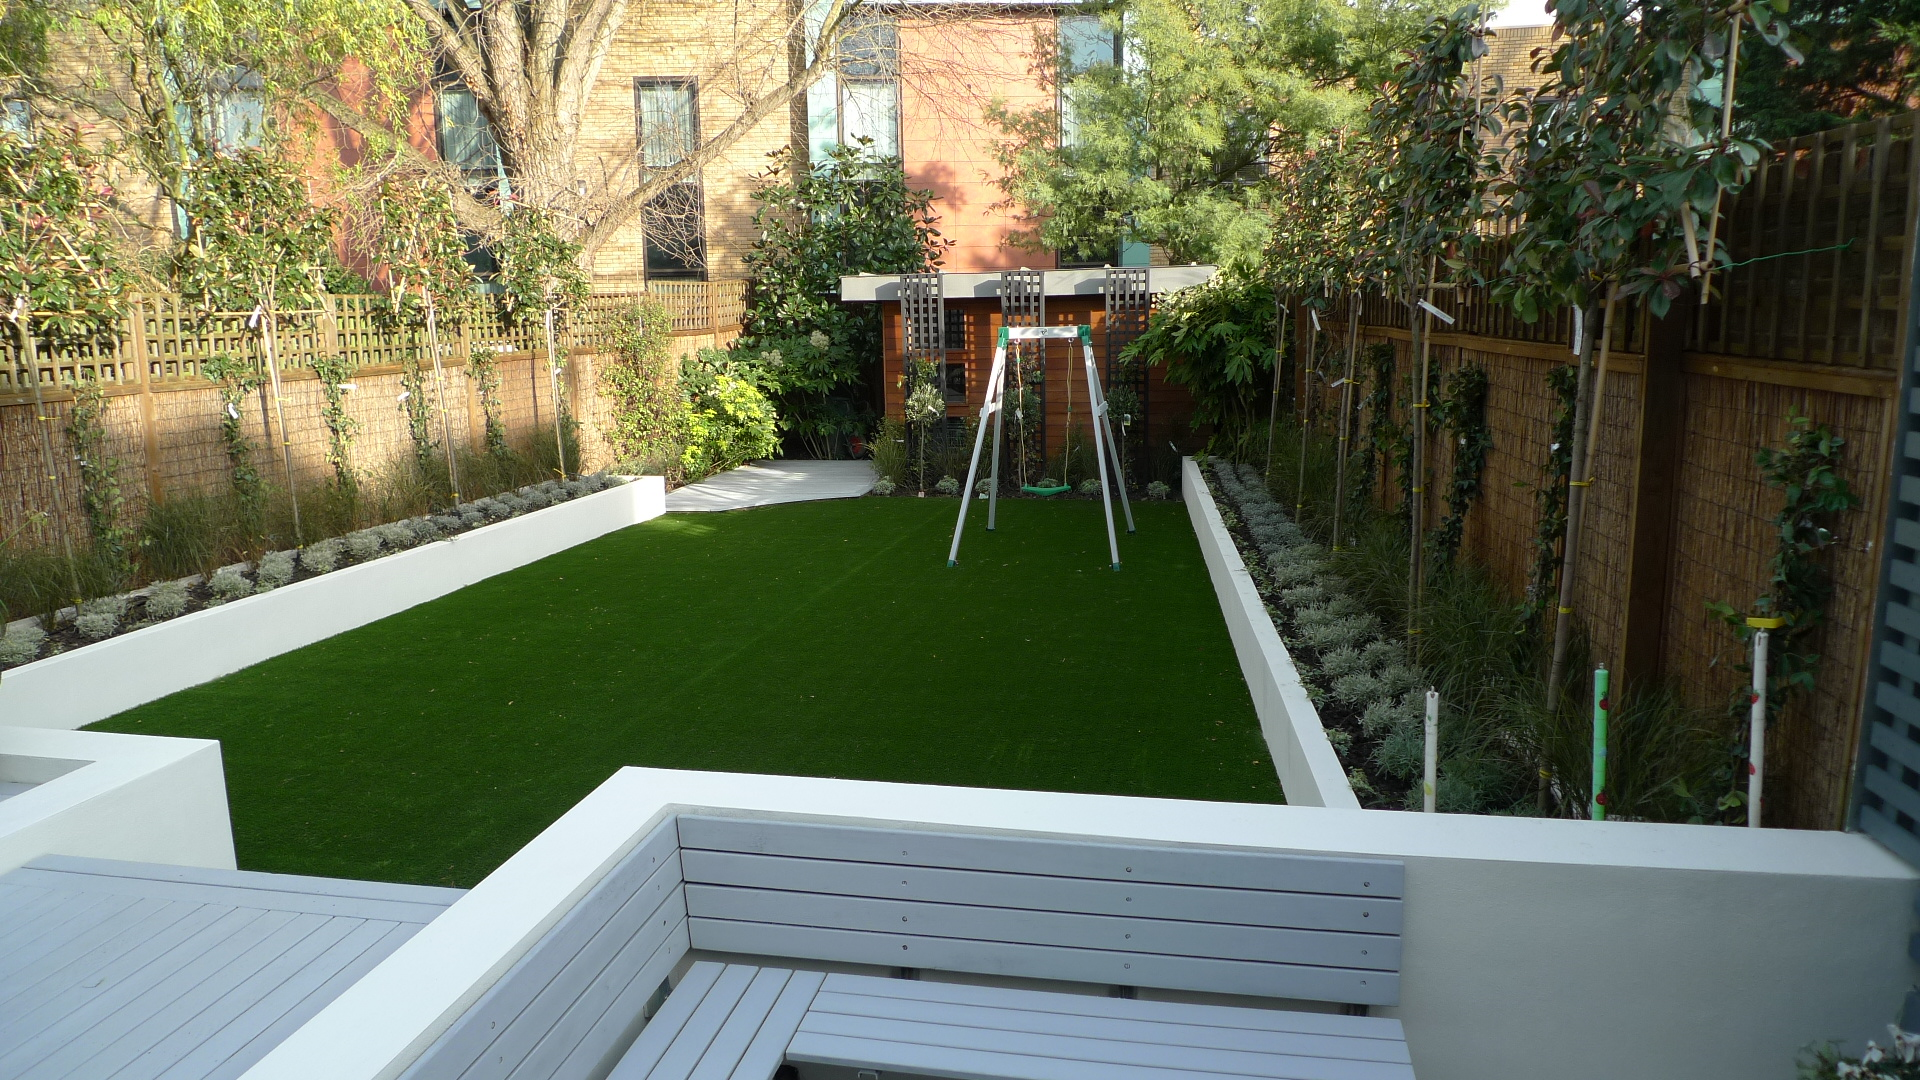 Modern garden design ideas london london garden design for Small modern garden design ideas